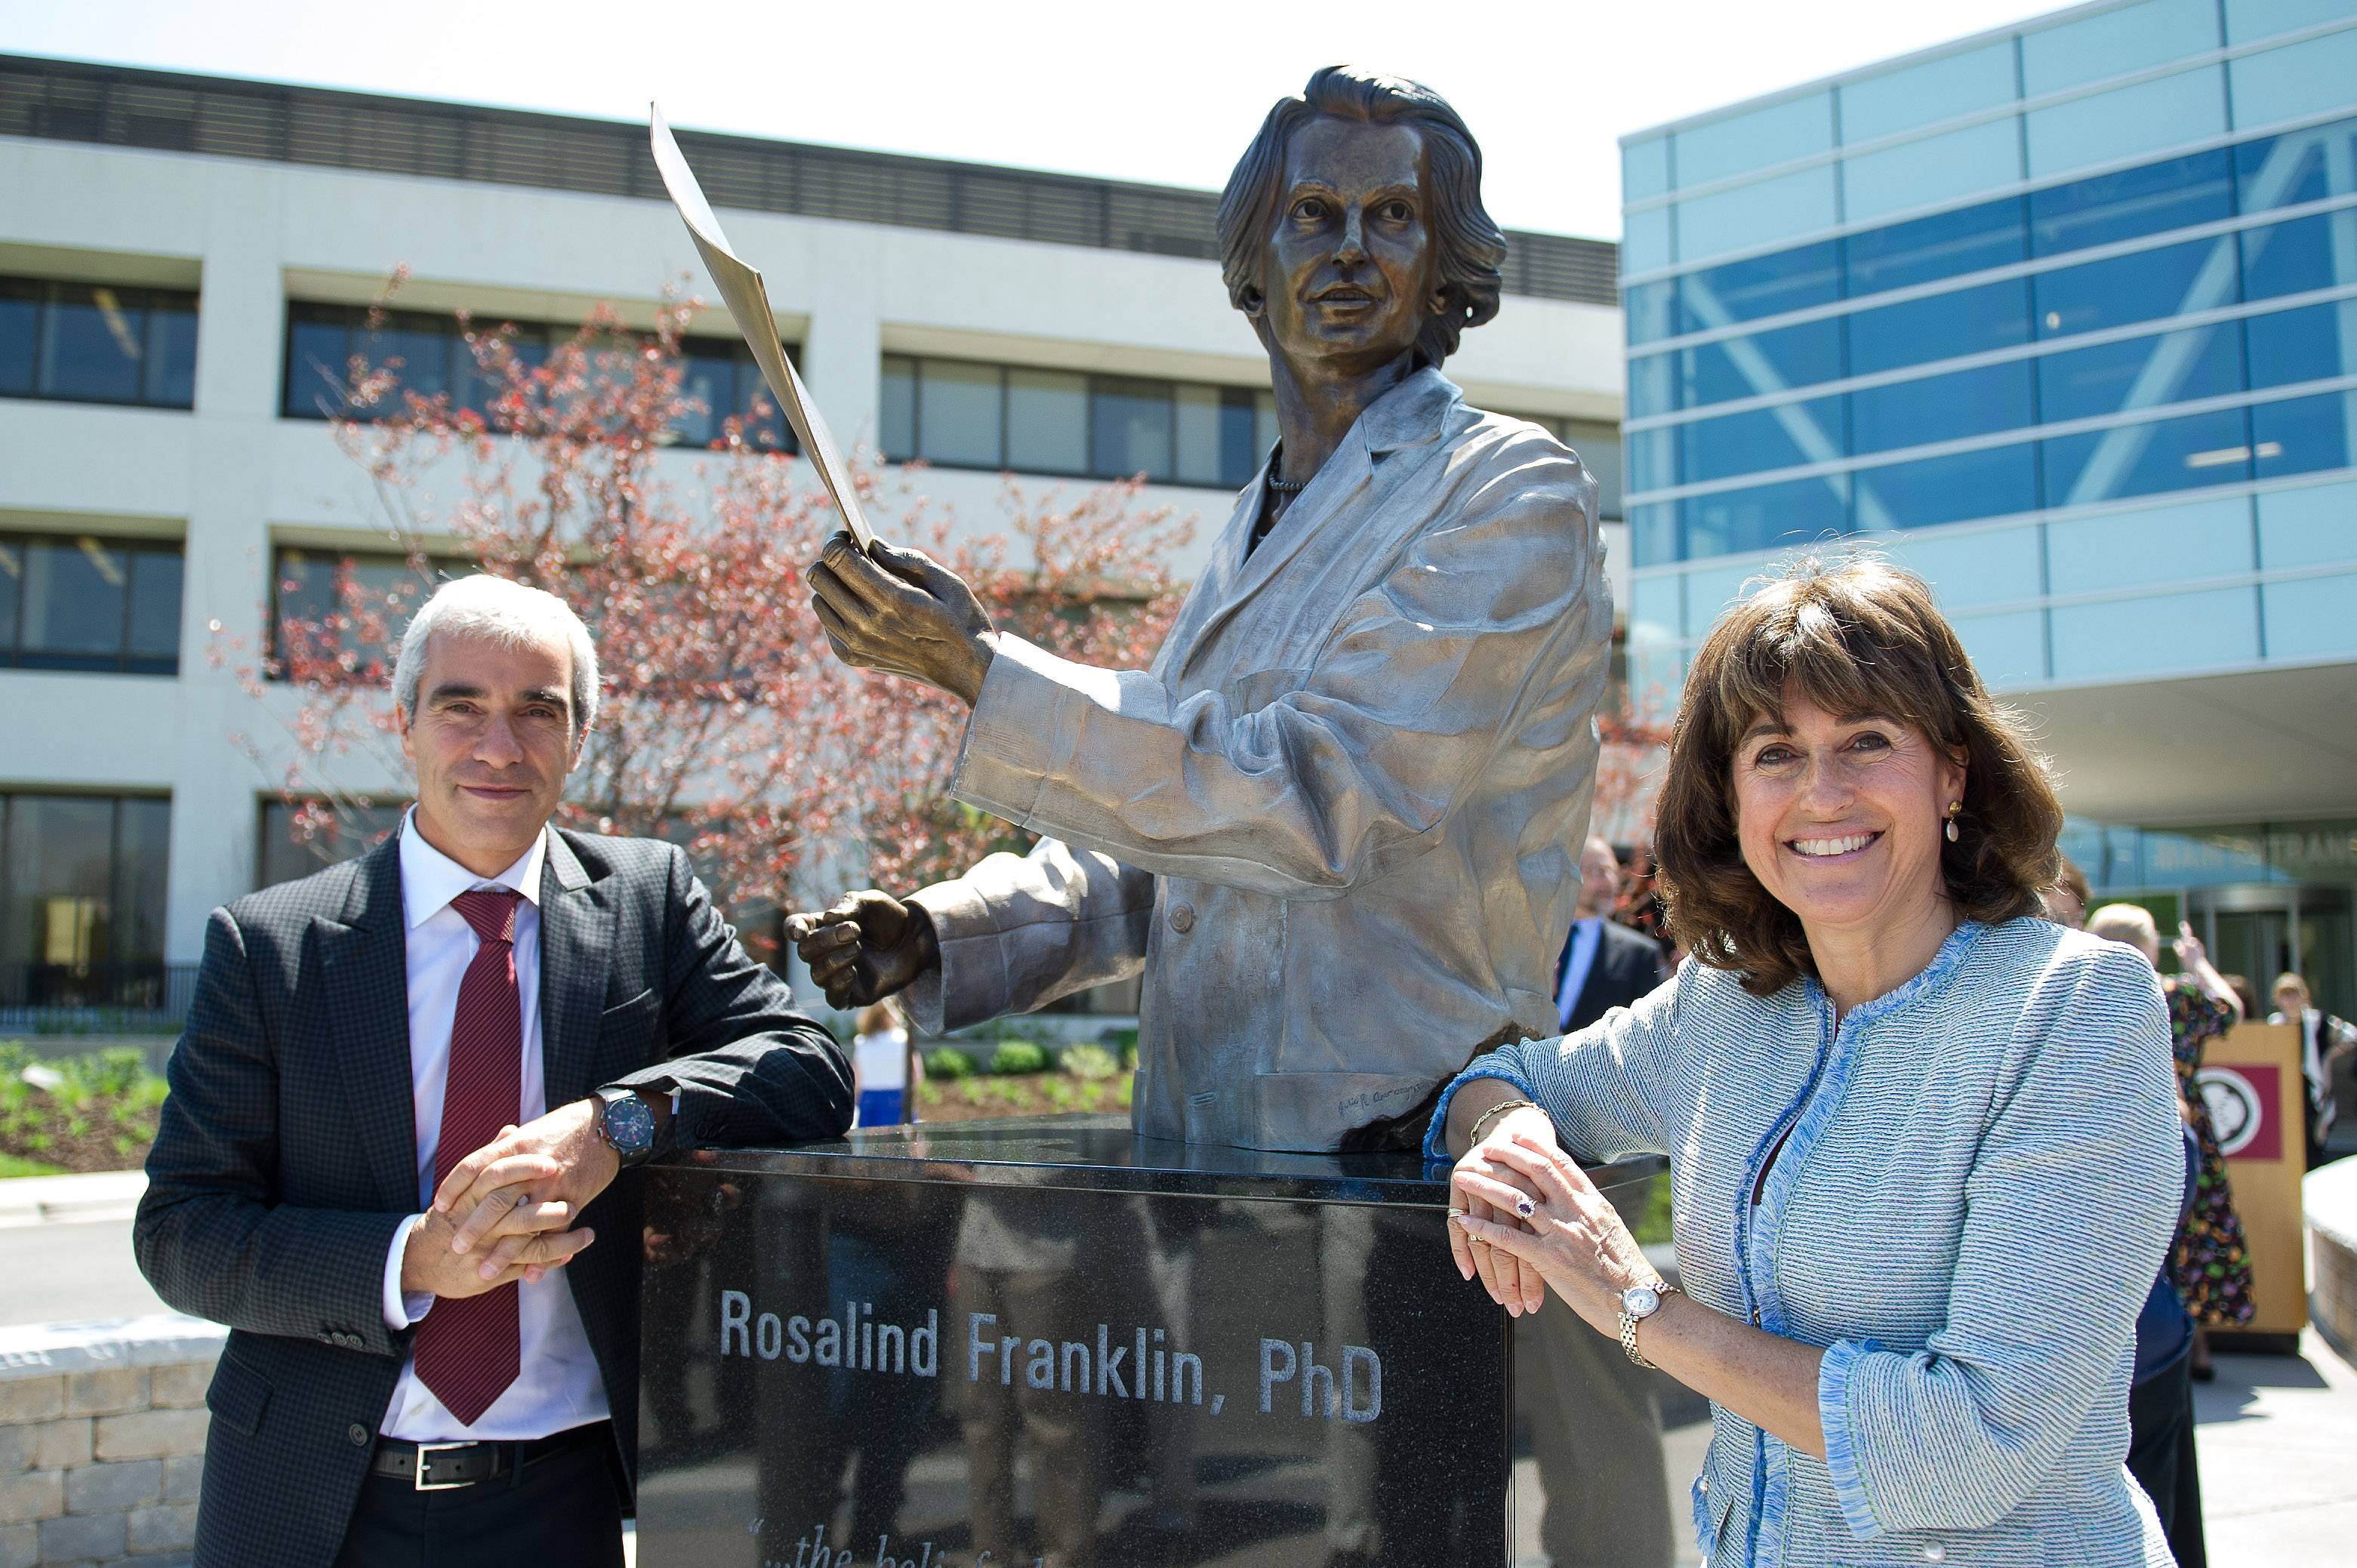 Martin Franklin, left, and Rosalind Franklin Jekowsky, the nephew and niece of the late-British scientist Rosalind Franklin attended Thursday's unveiling of a bronze statue in her honor at Rosalind Franklin University of Medicine and Science in North Chicago.